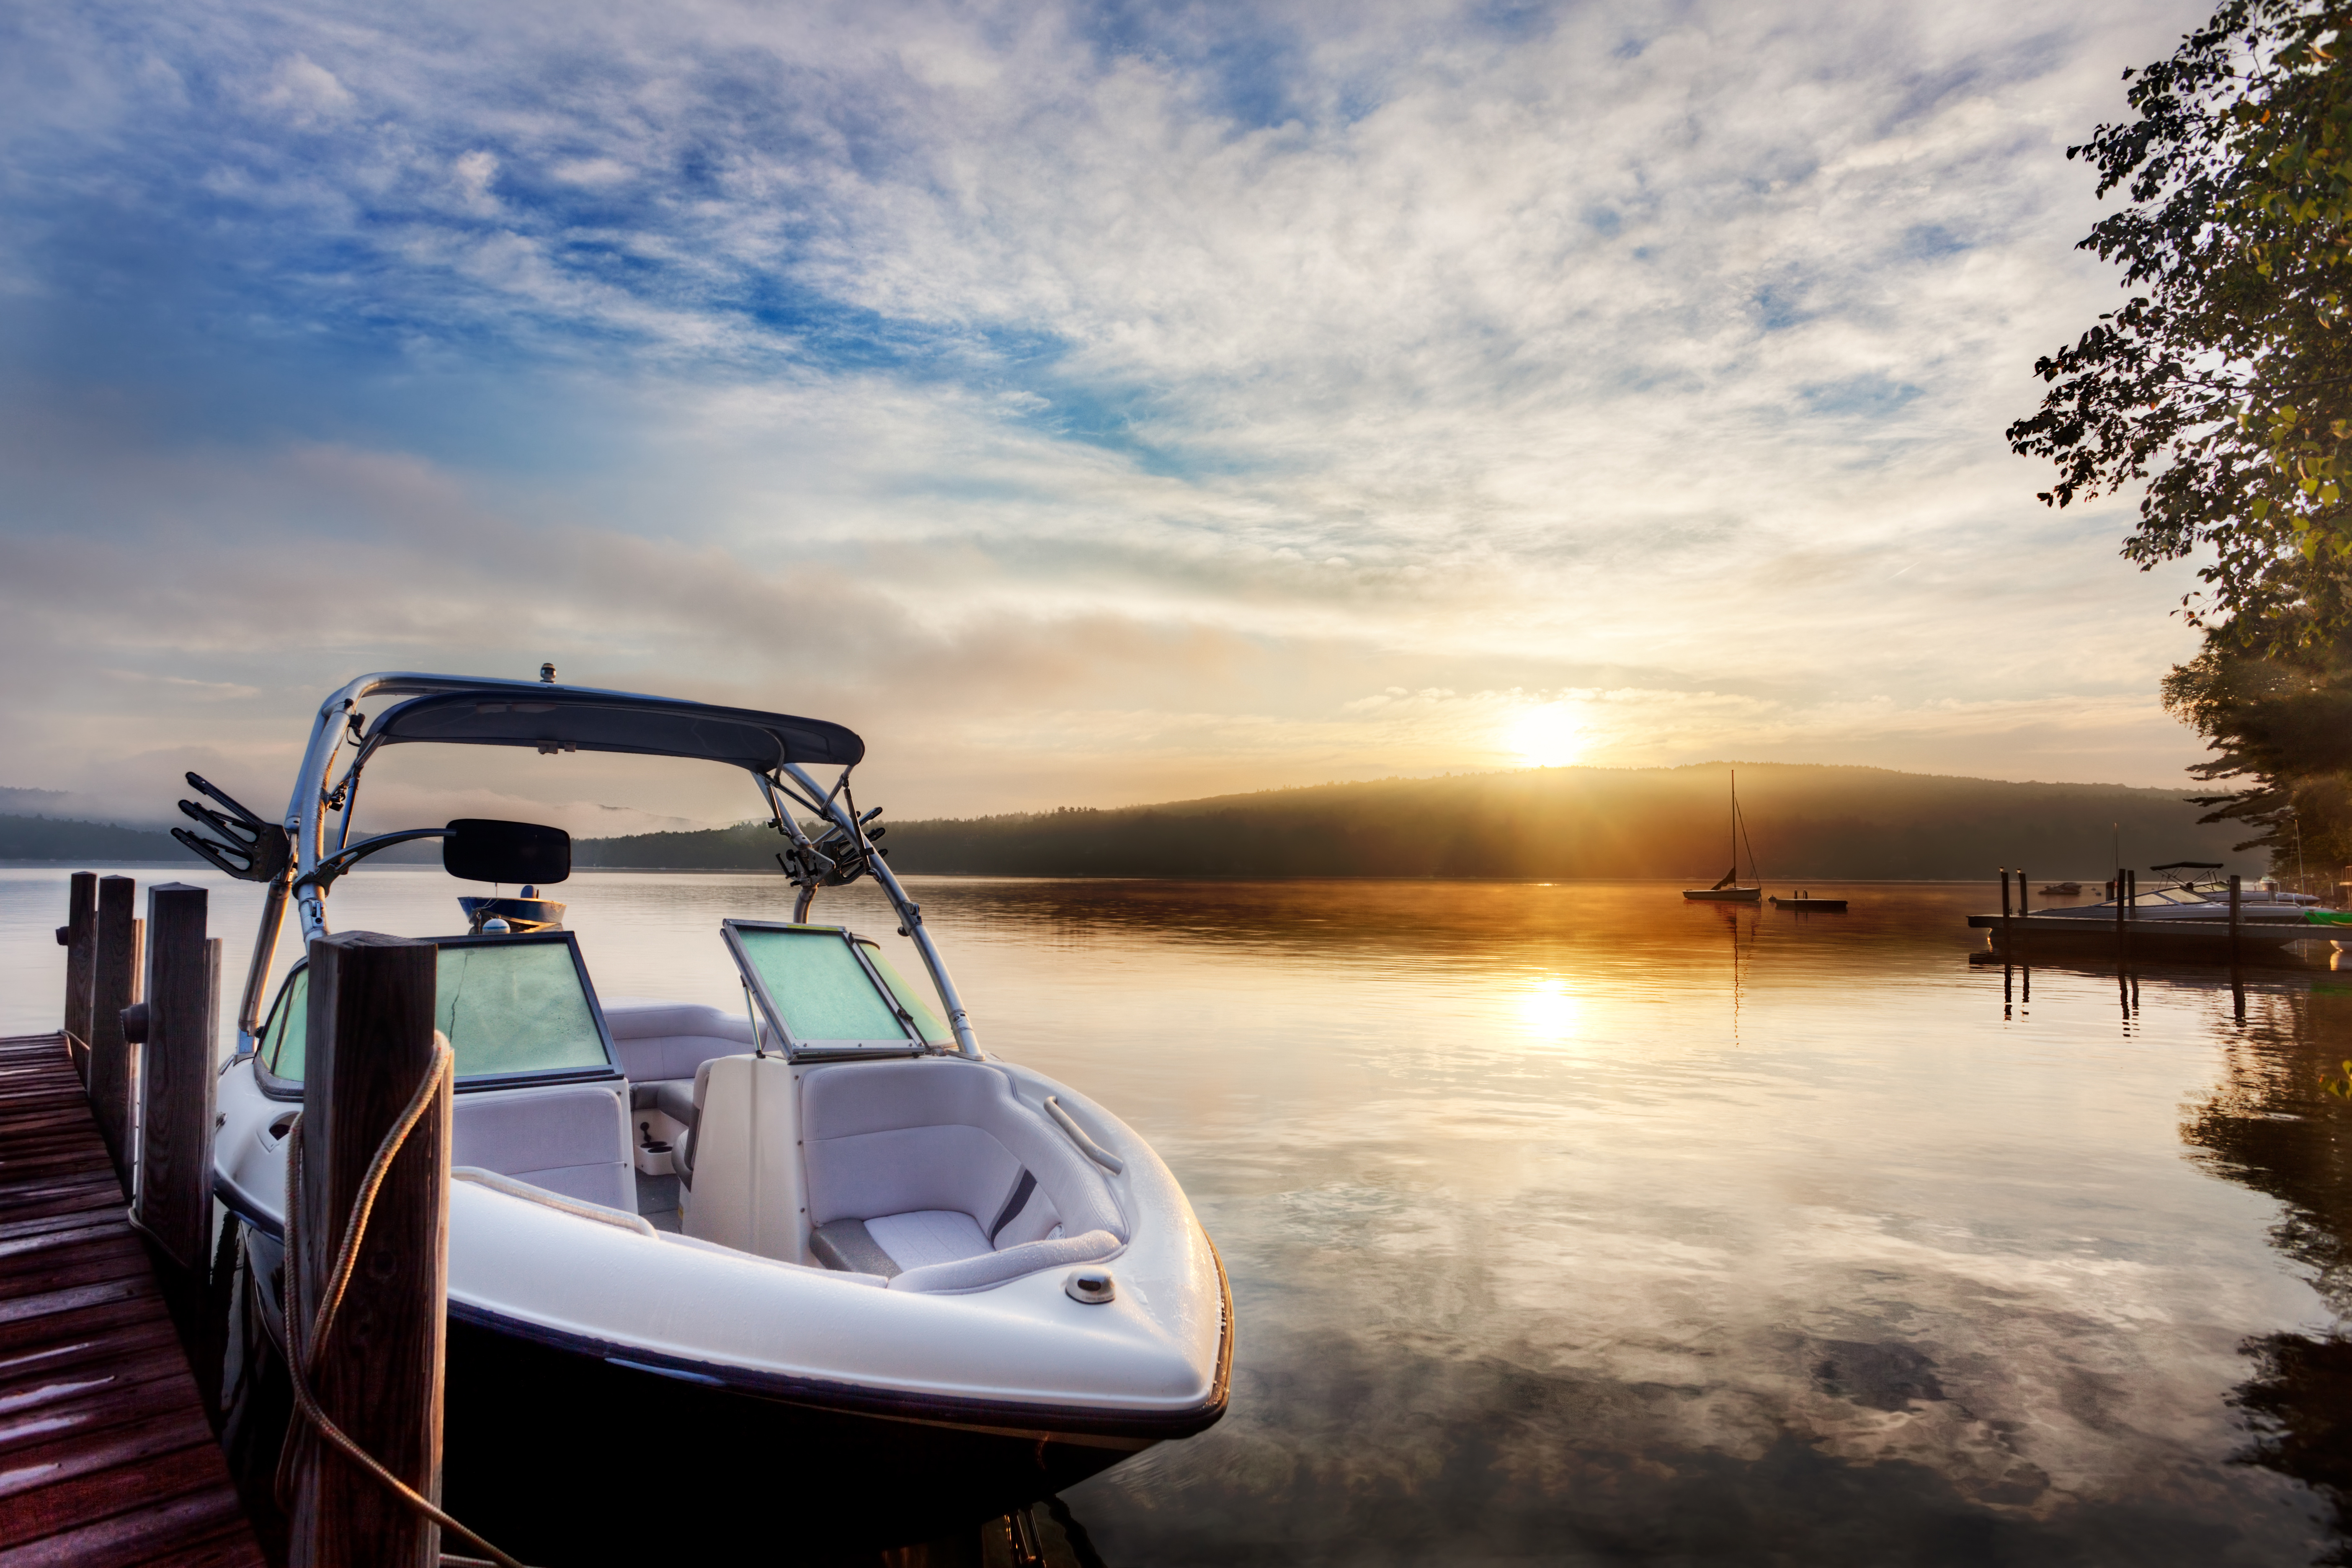 Credit Union in Vancouver WA offers boat loans & boat financing to members